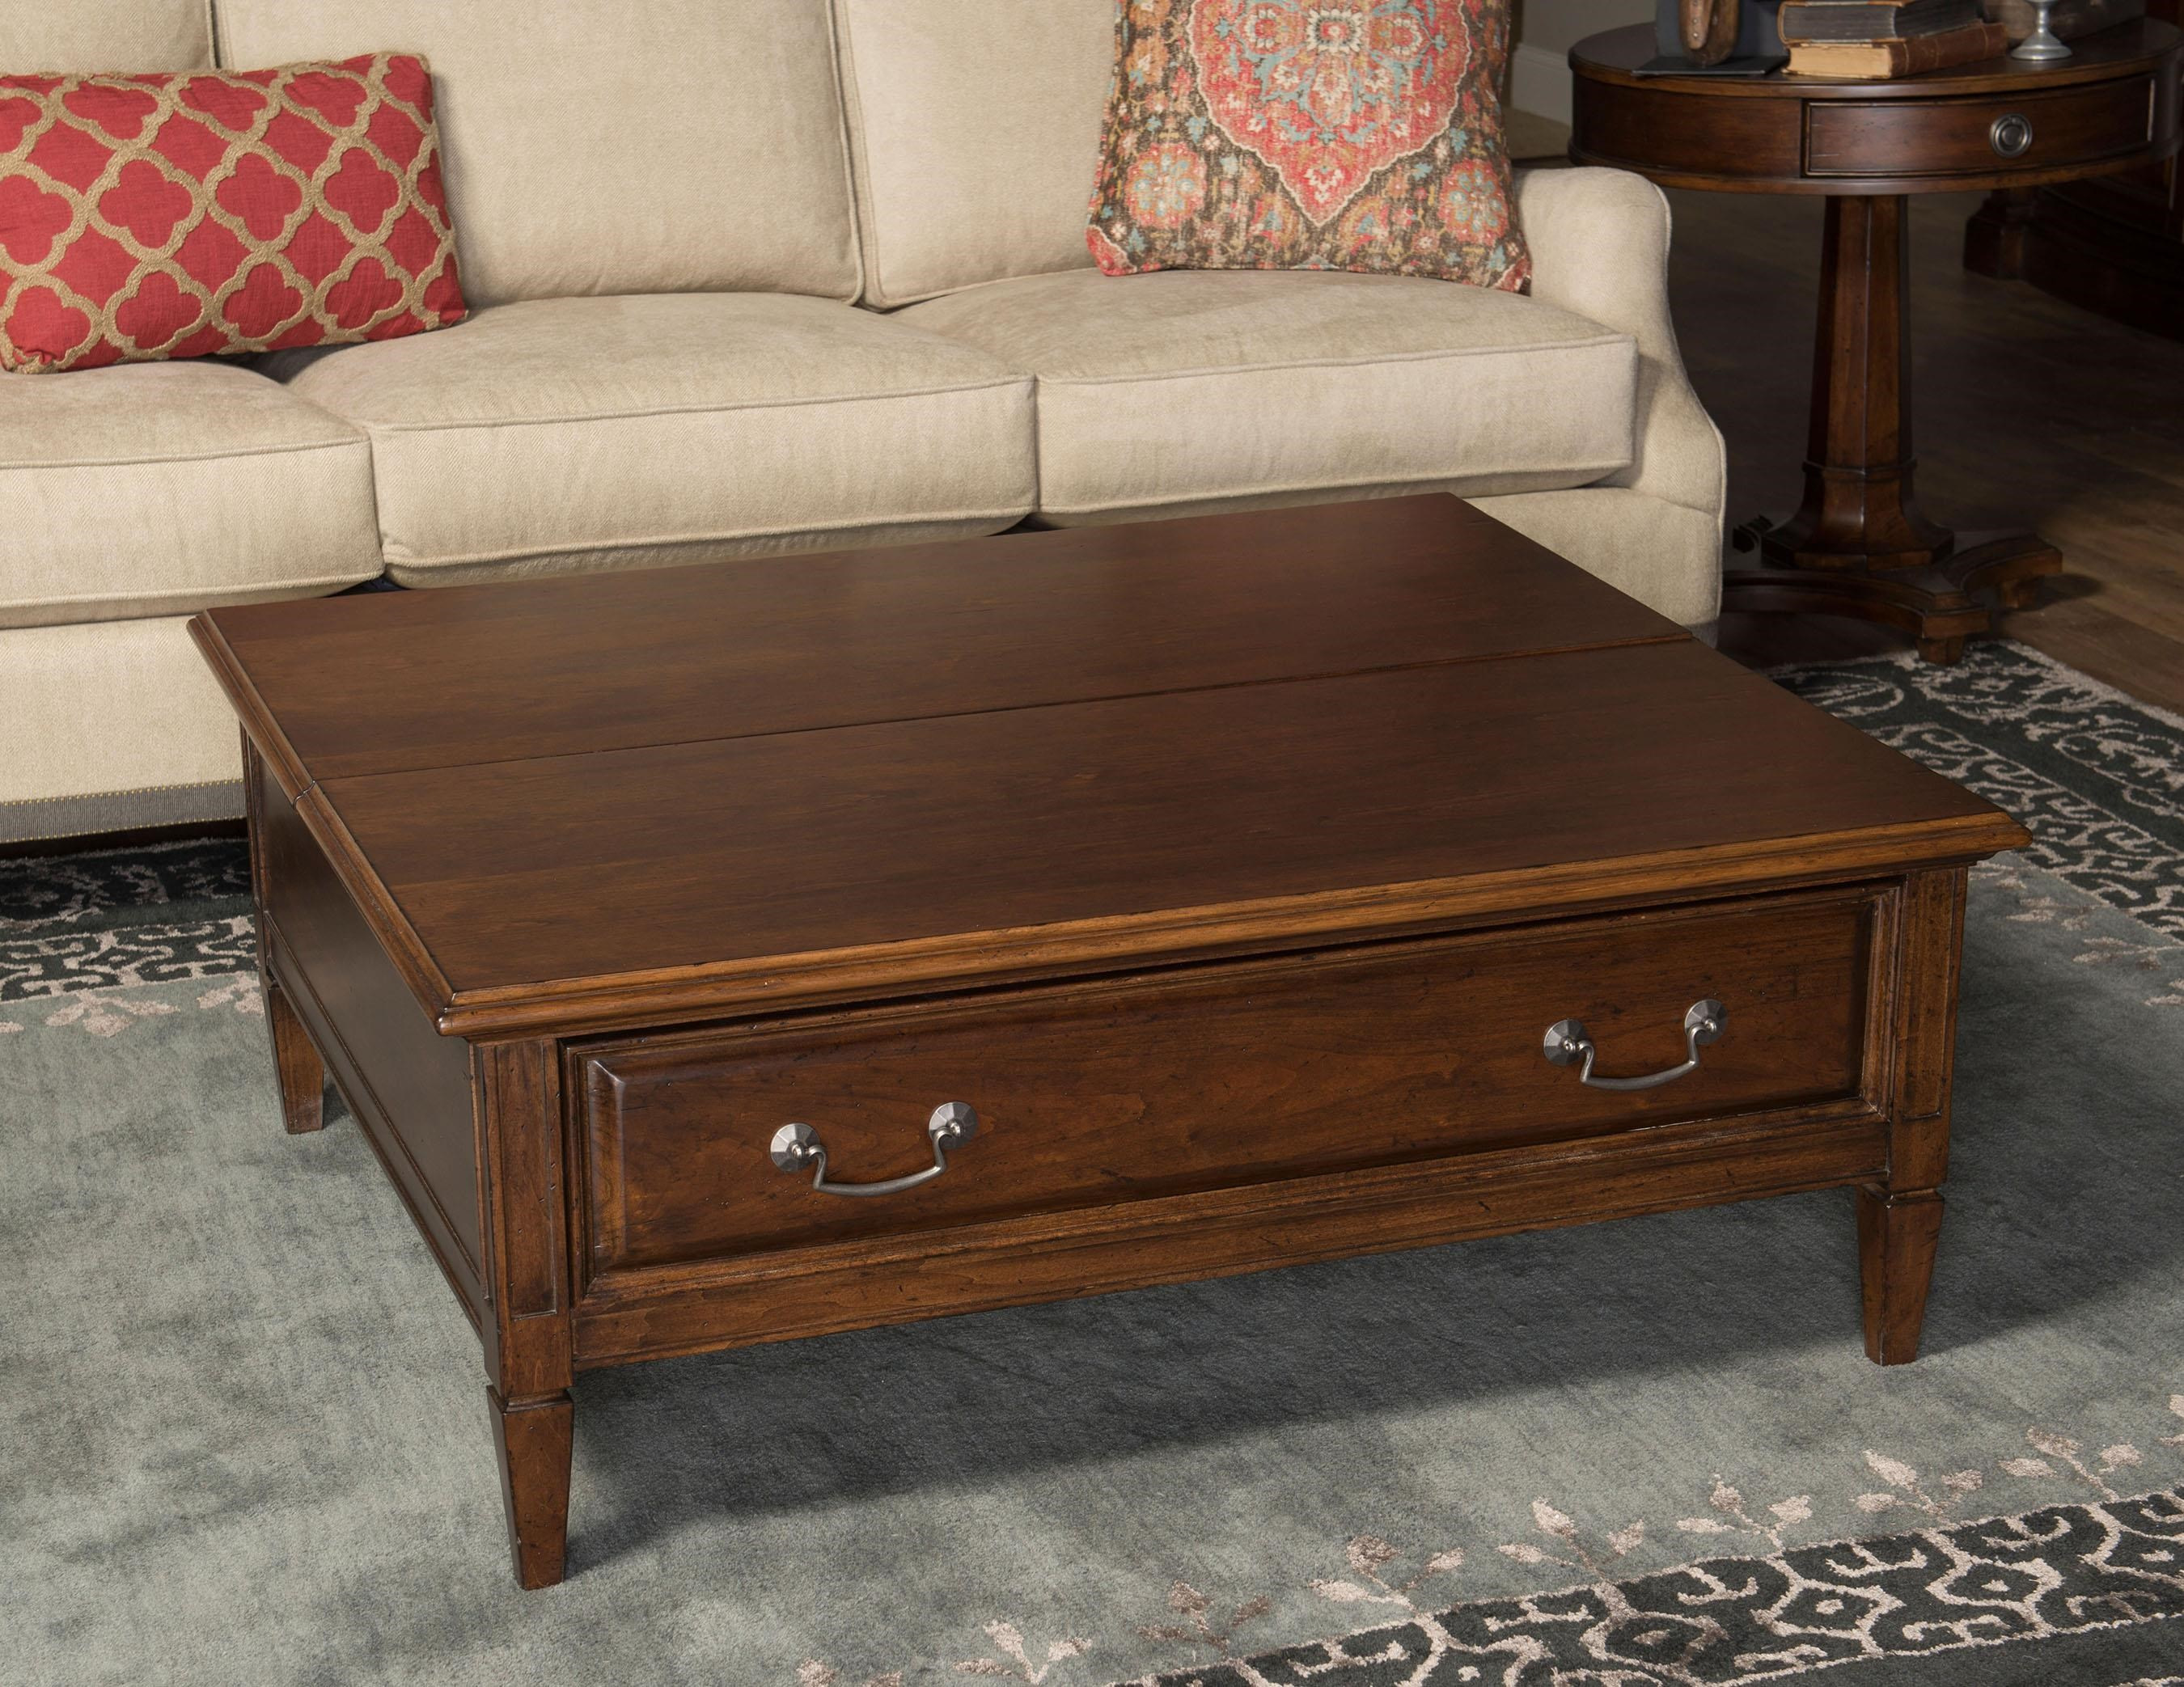 Morris Home Furnishings Upstate - Upstate Lift Top Cocktail Table - Item Number: 773737294